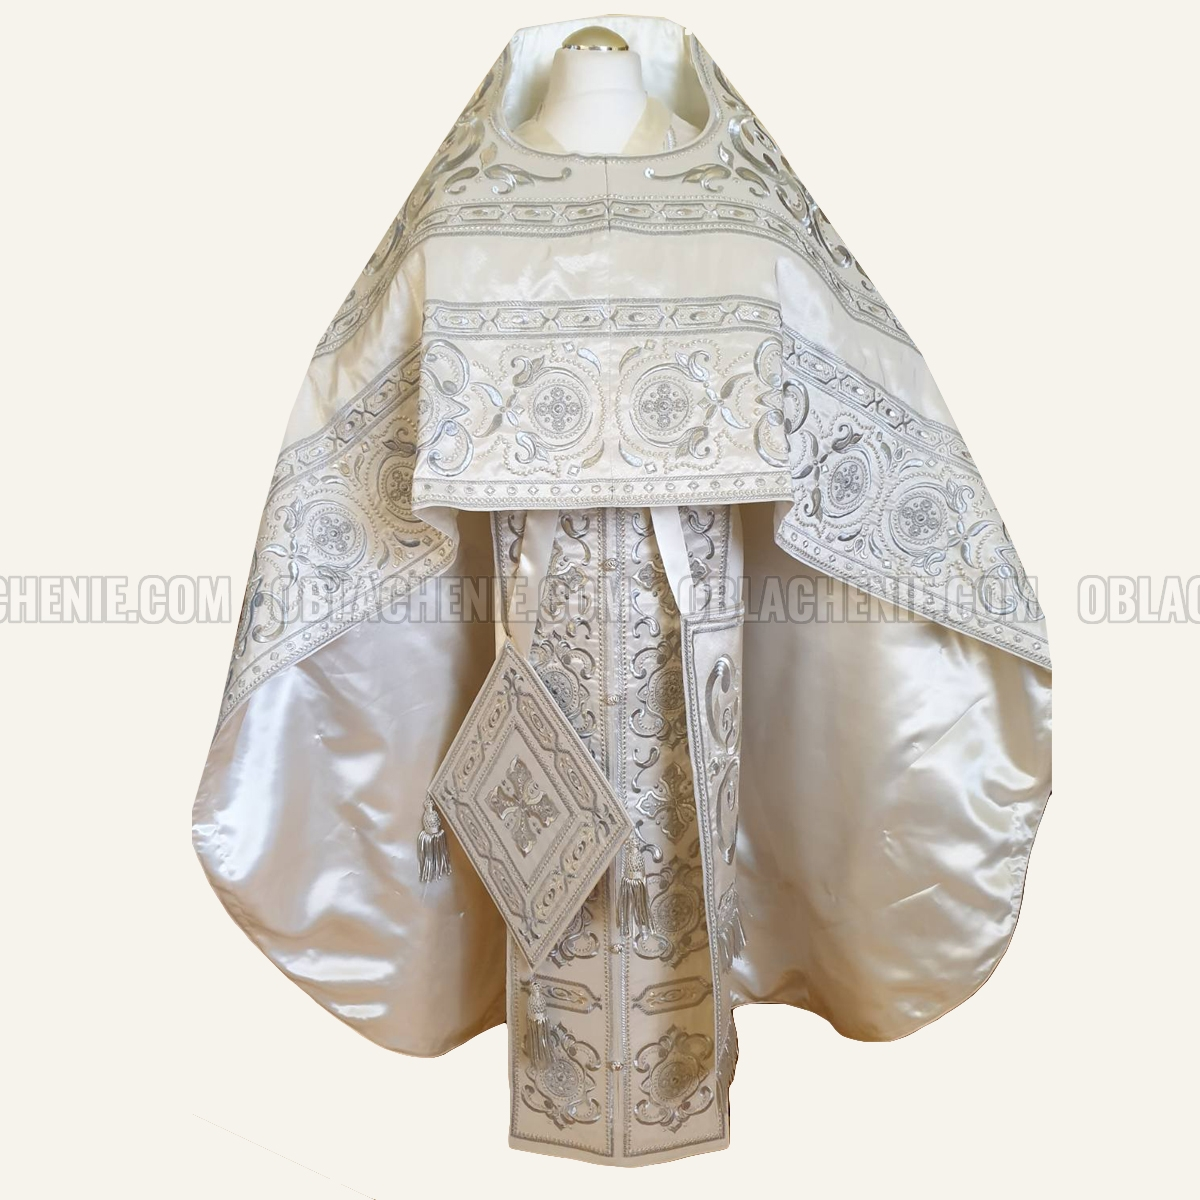 EMBROIDERED PRIEST'S VESTMENTS 10930